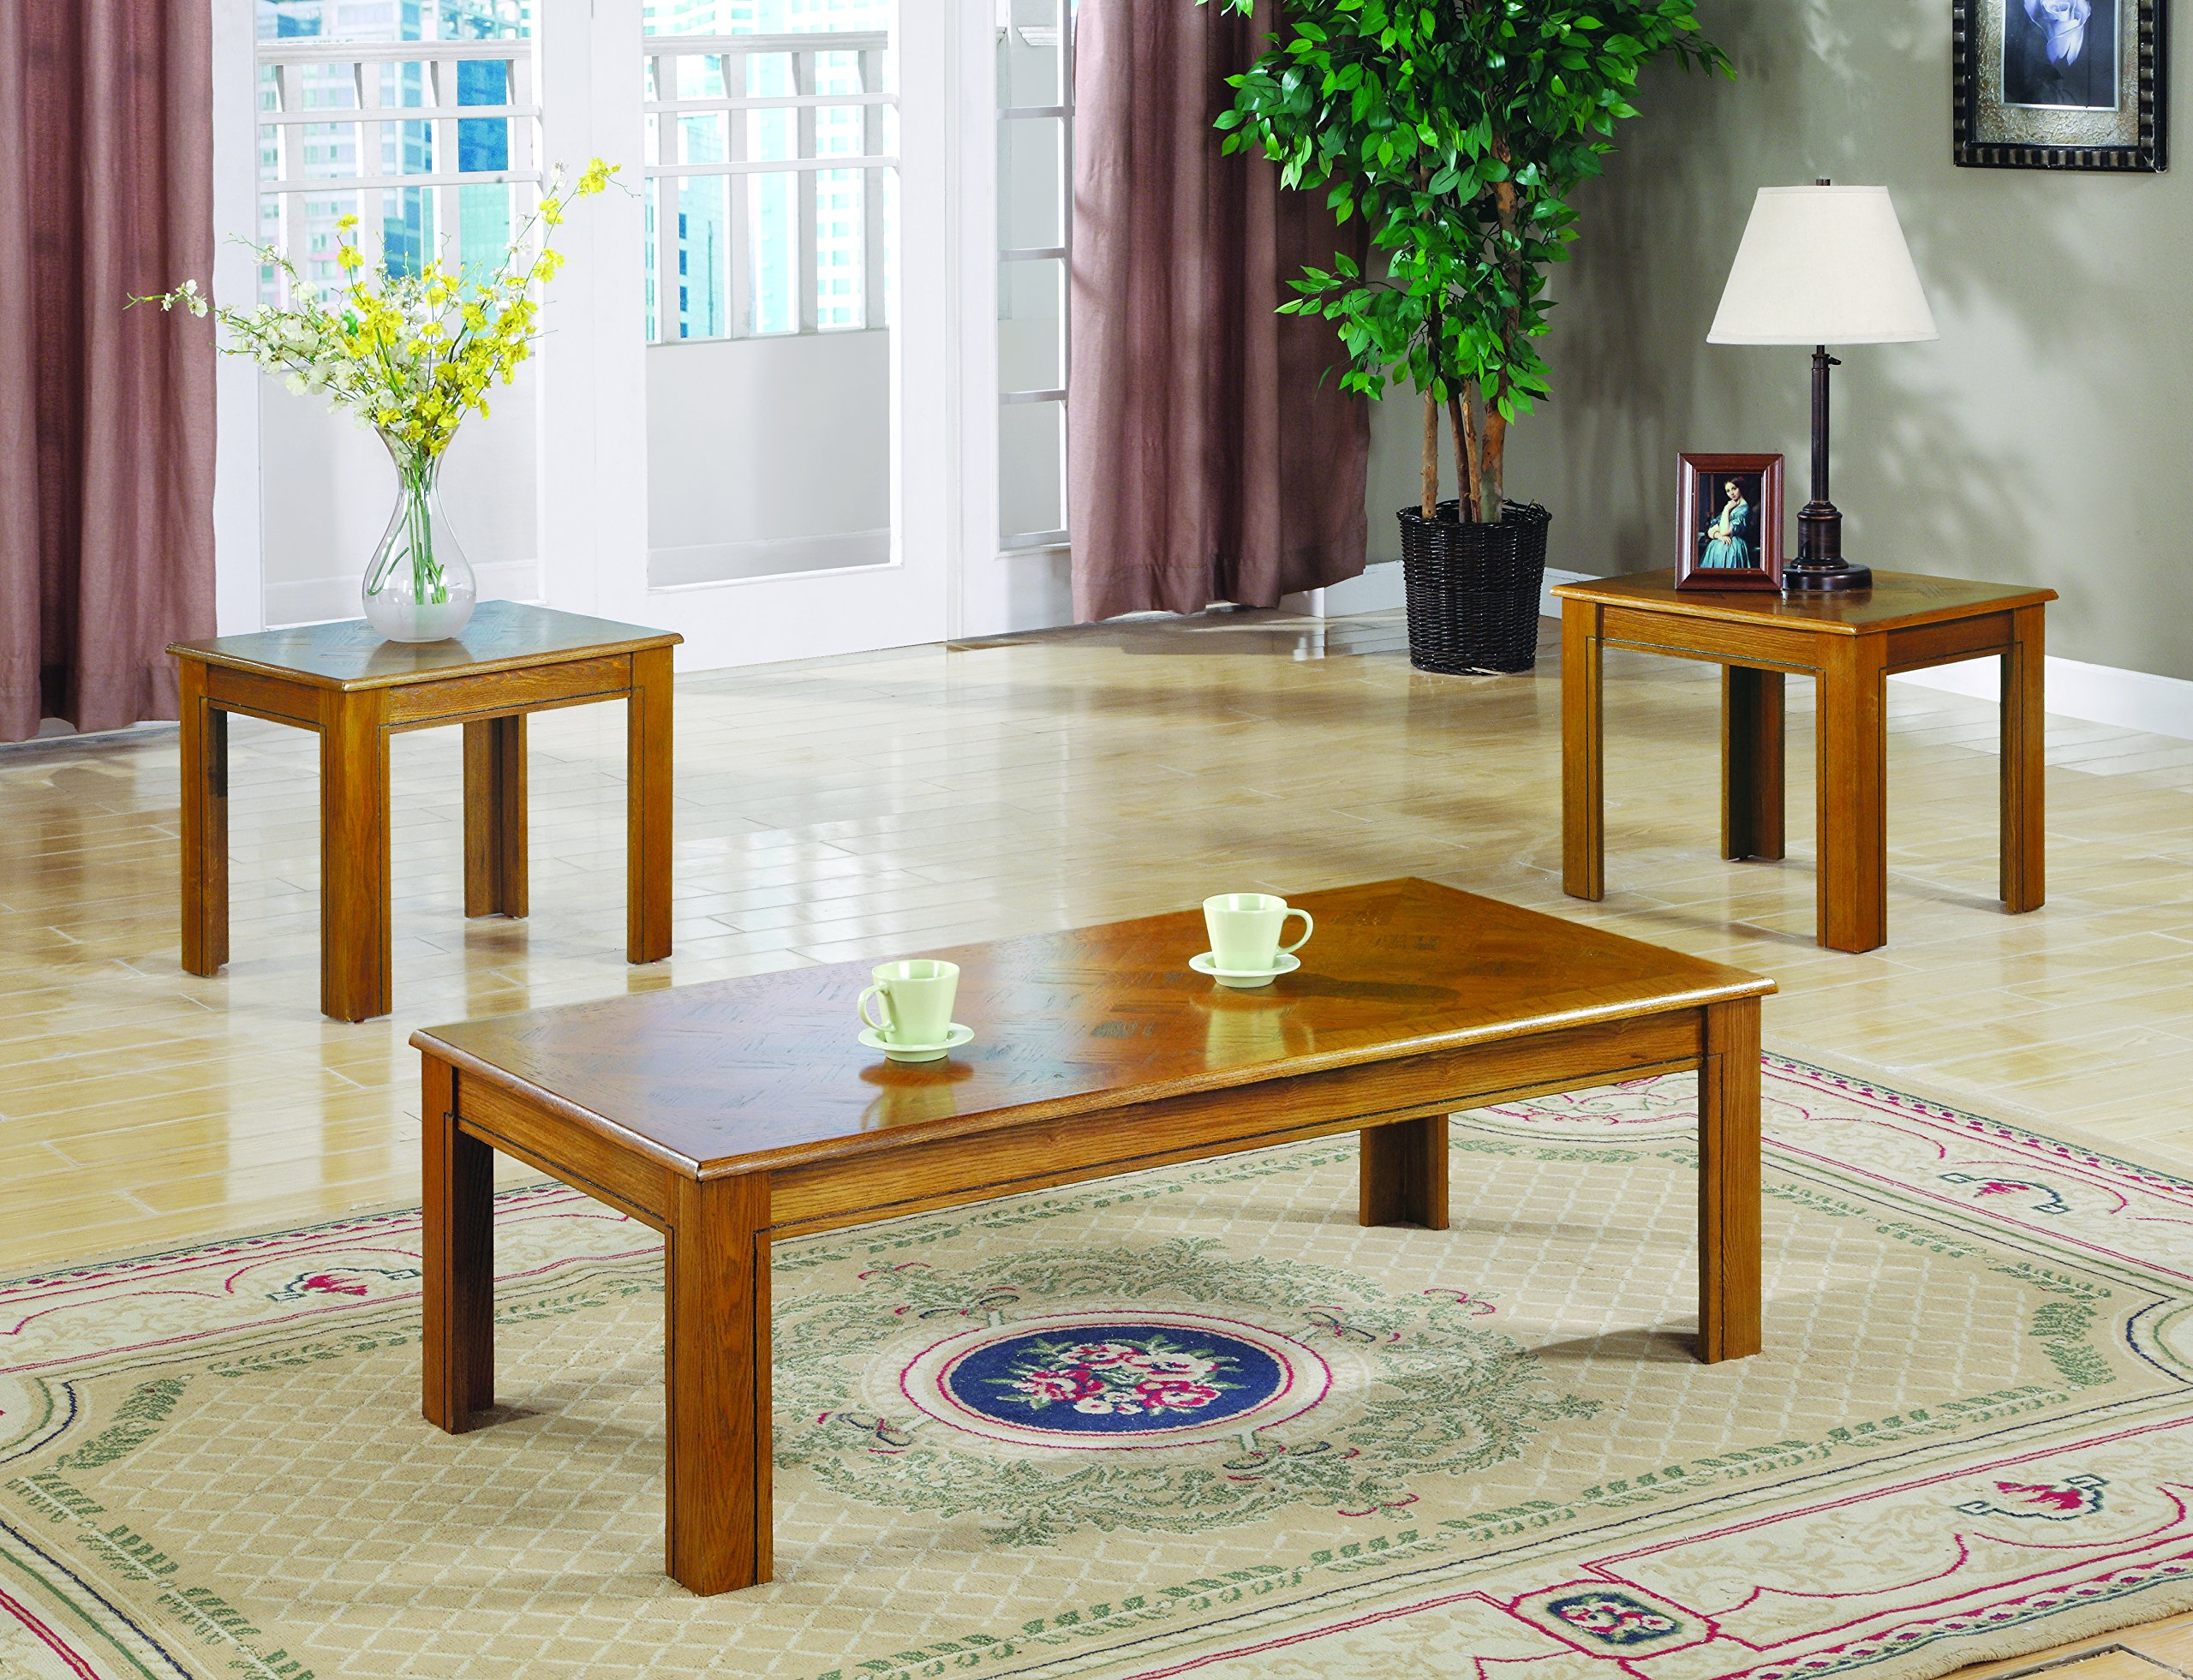 3-piece Parquet Top Occasional Table Set Oak by Coaster Home Furnishings